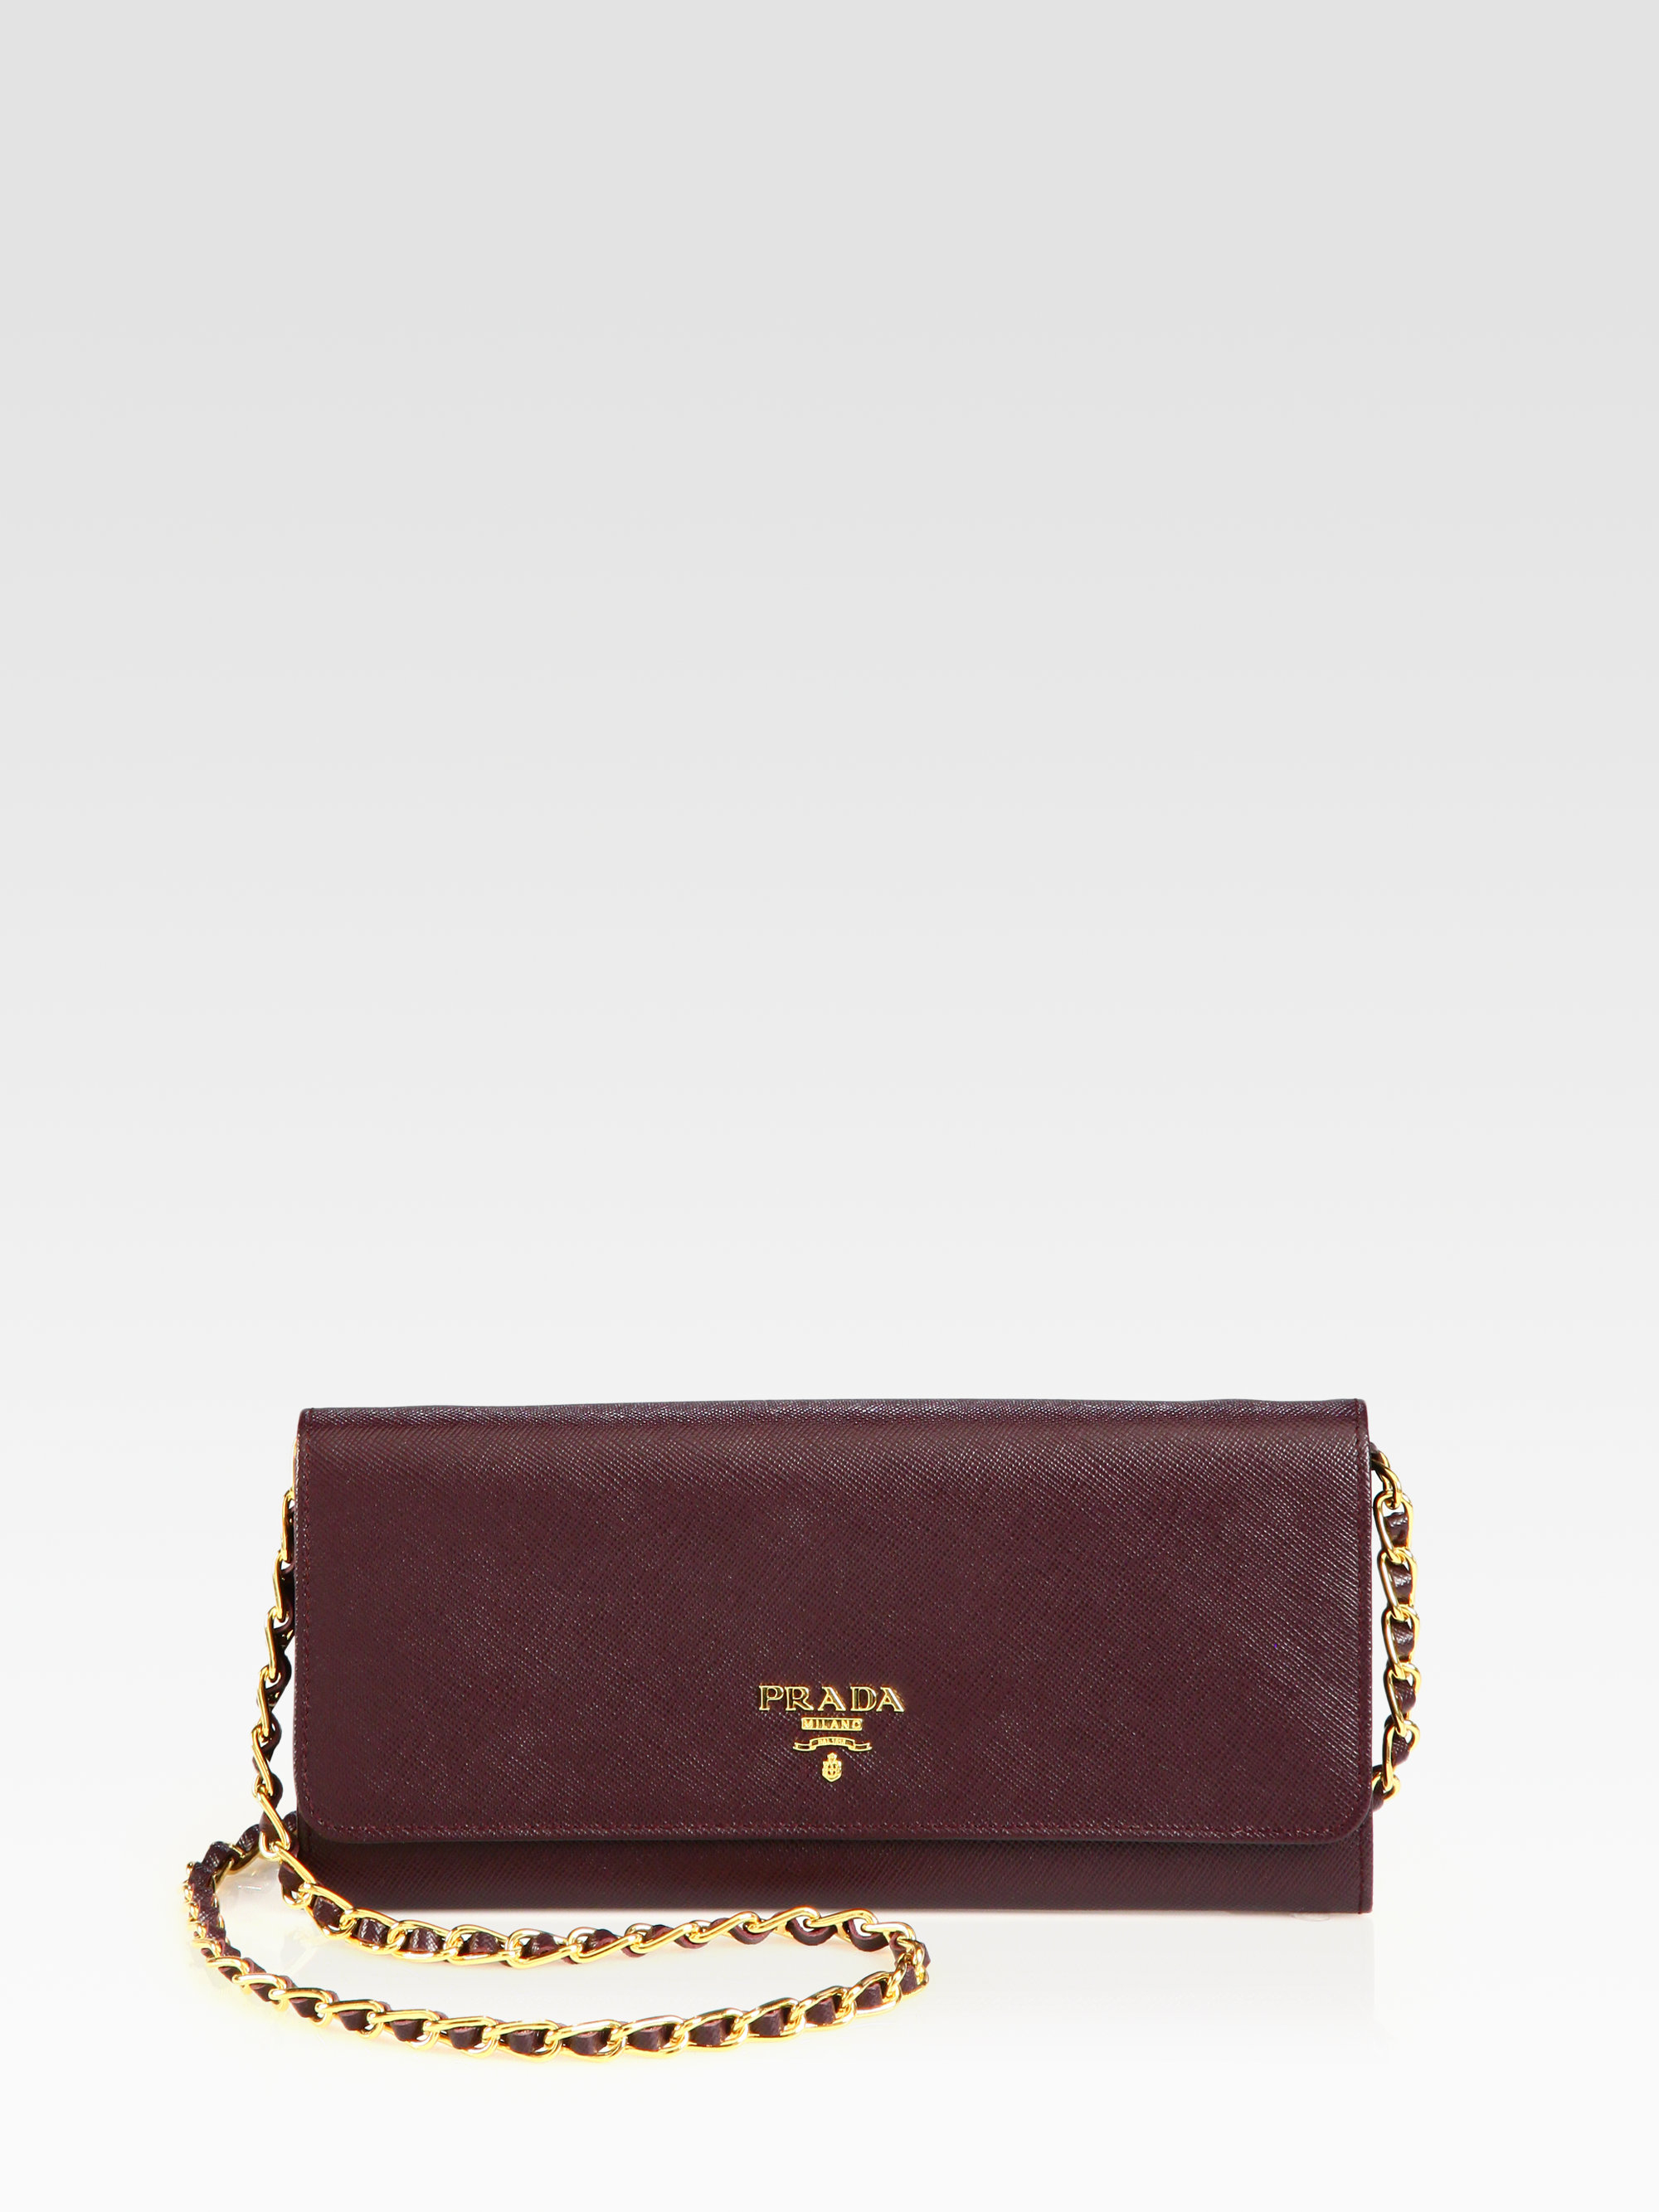 Prada Saffiano Metal Oro Chain Wallet in Purple (BORDEAUX-BURGUNDY ...